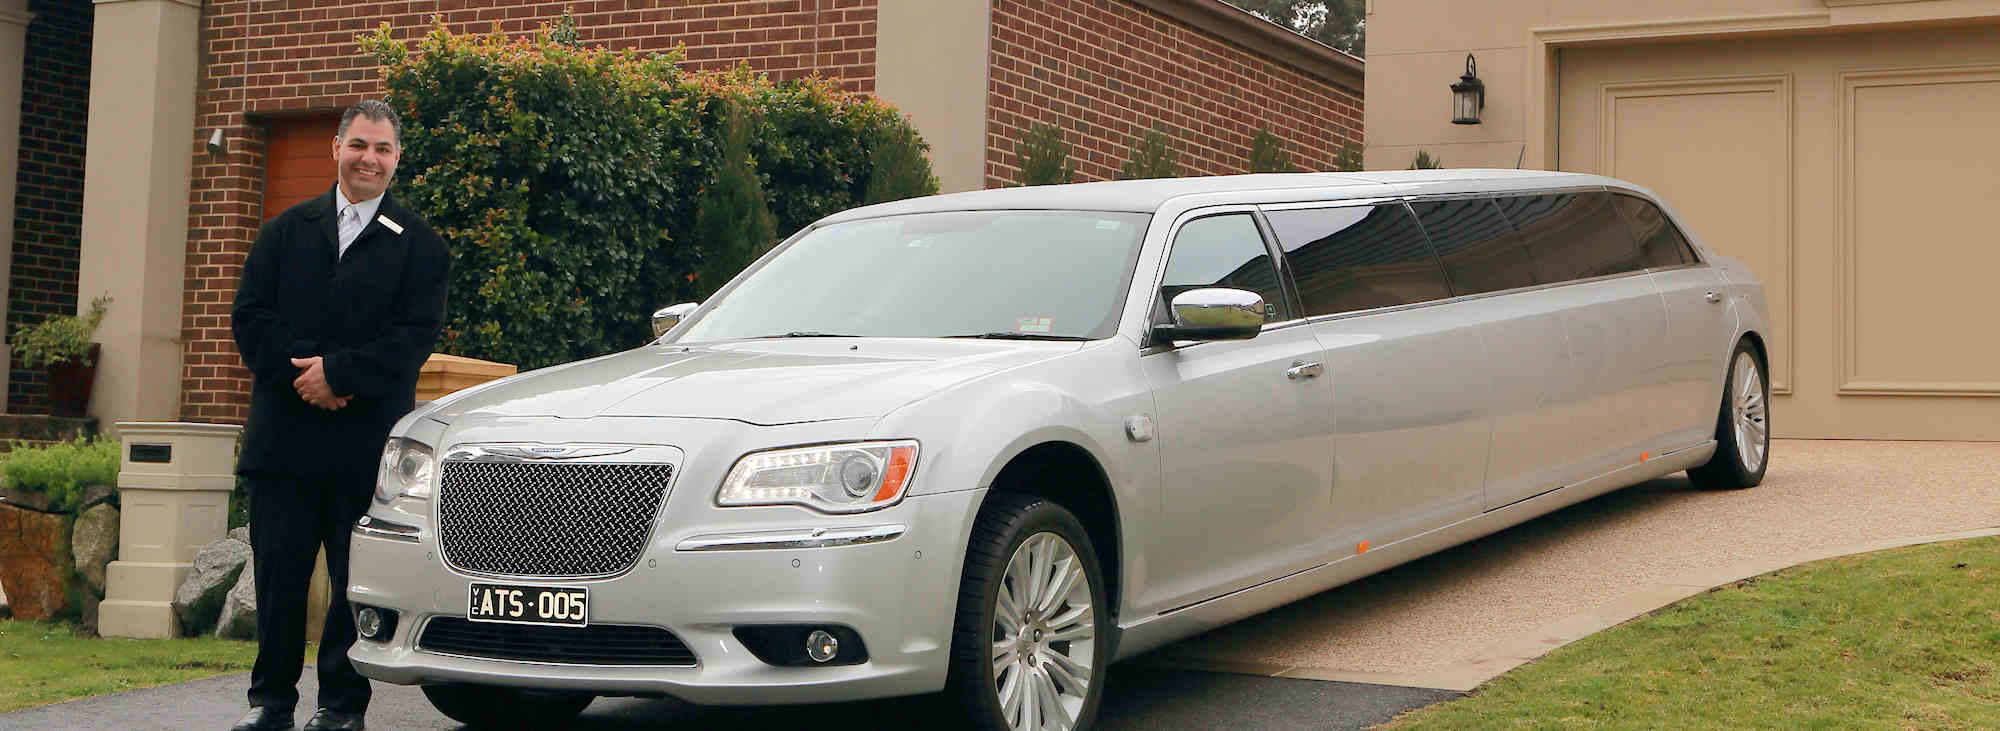 School formal limousine hire